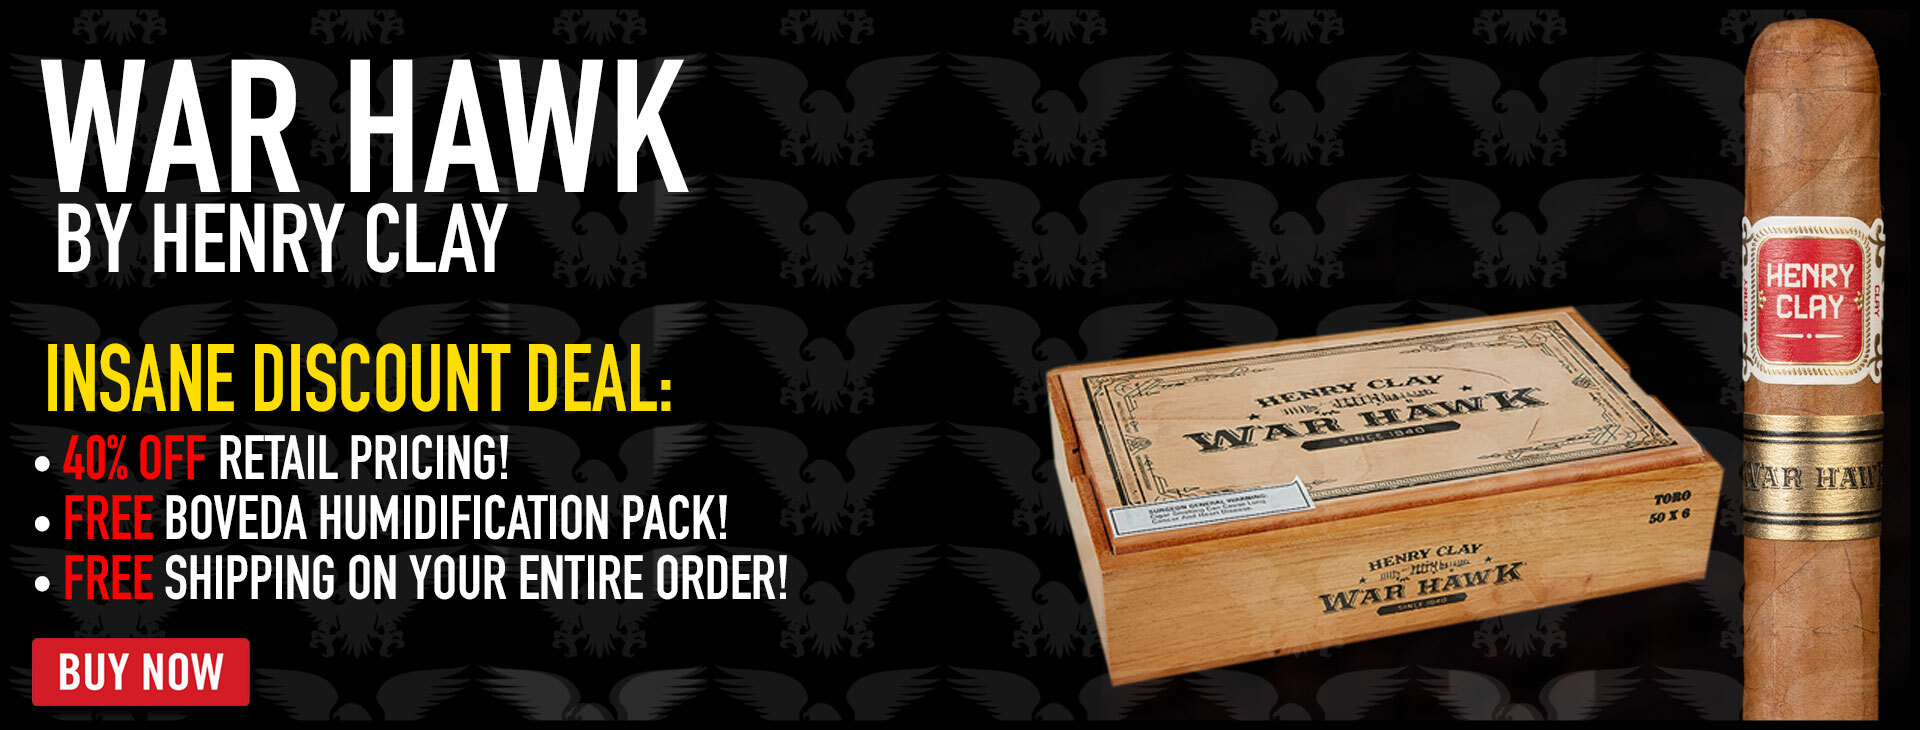 40% OFF WAR HAWK BY HENRY CLAY